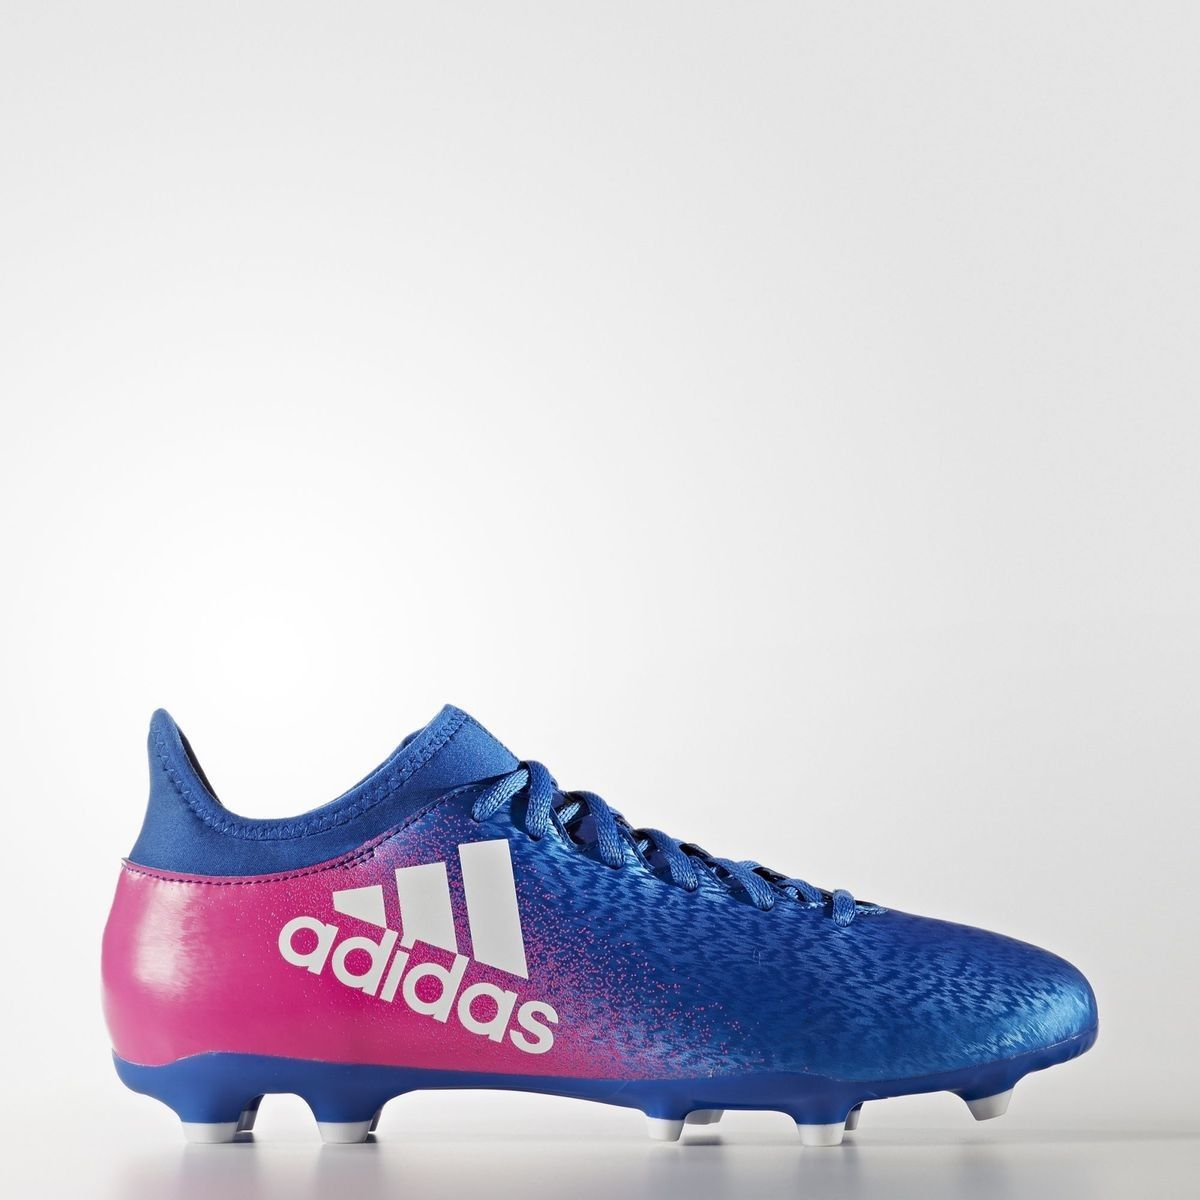 Chaussures Adidas X 16.3 Fg Bleu Homme Taille : 46